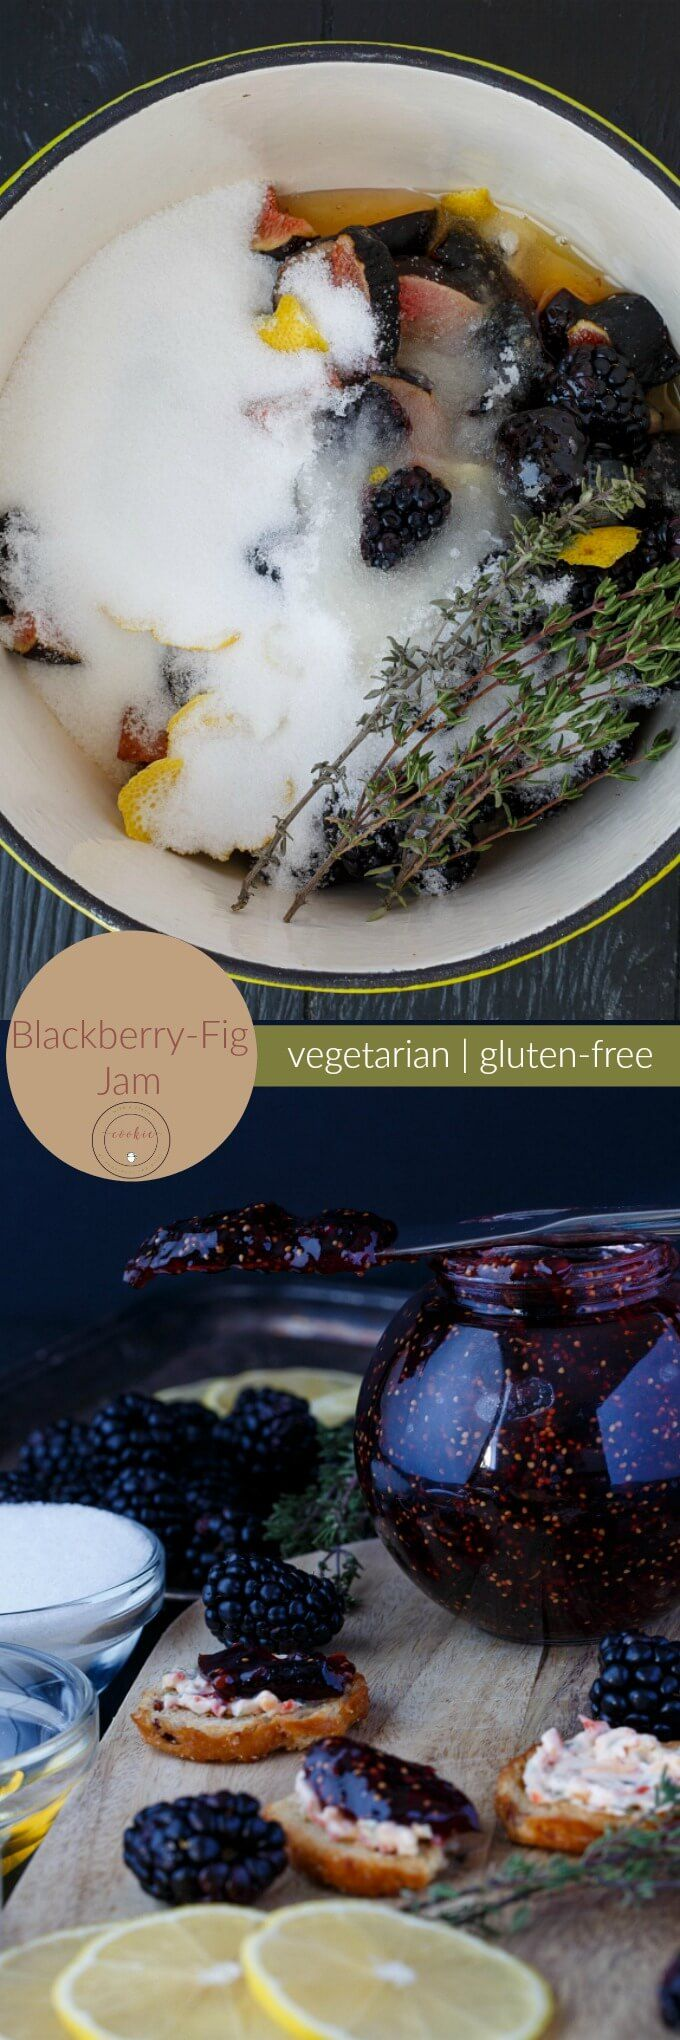 Blackberry-Fig Jam | http://thecookiewriter.com | @thecookiewriter | #jam | This homemade jam is super easy to make, and creates enough to last you a few weeks :) Vegetarian, gluten-free, and vegan (you can sub in all sugar for the honey.)